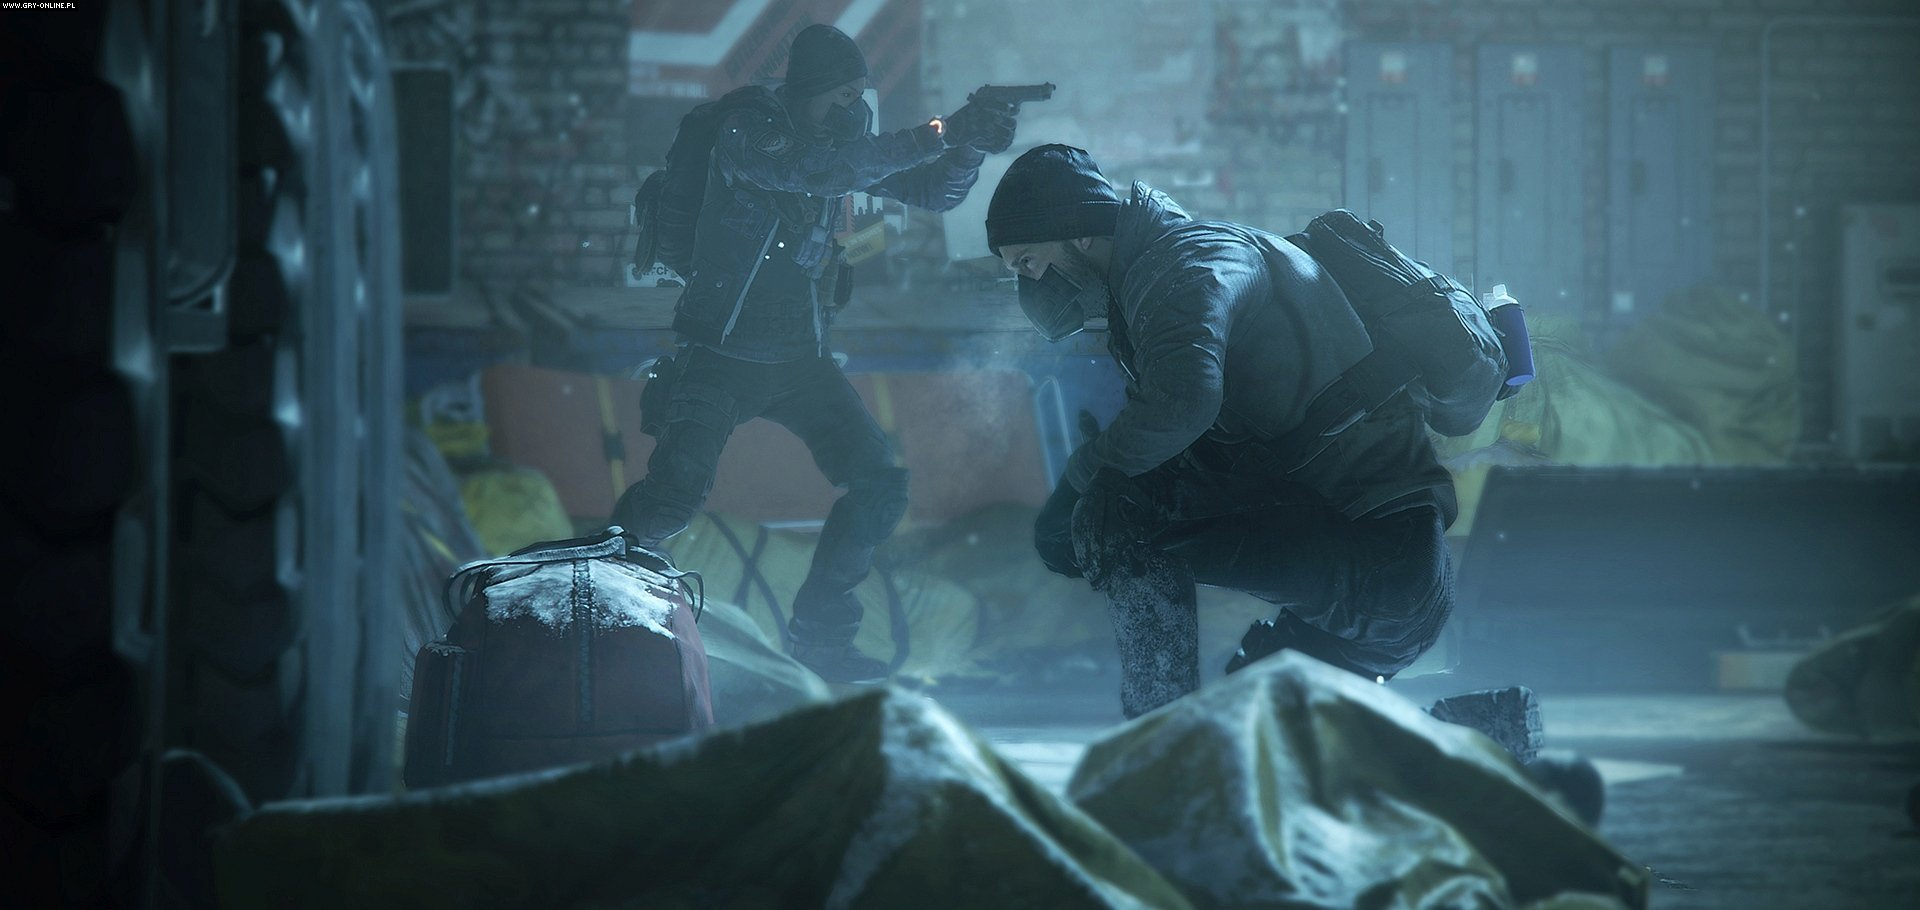 Tom Clancy's The Division: Przetrwanie PC, PS4, XONE Gry Screen 4/4, Massive Entertainment / Ubisoft Massive, Ubisoft